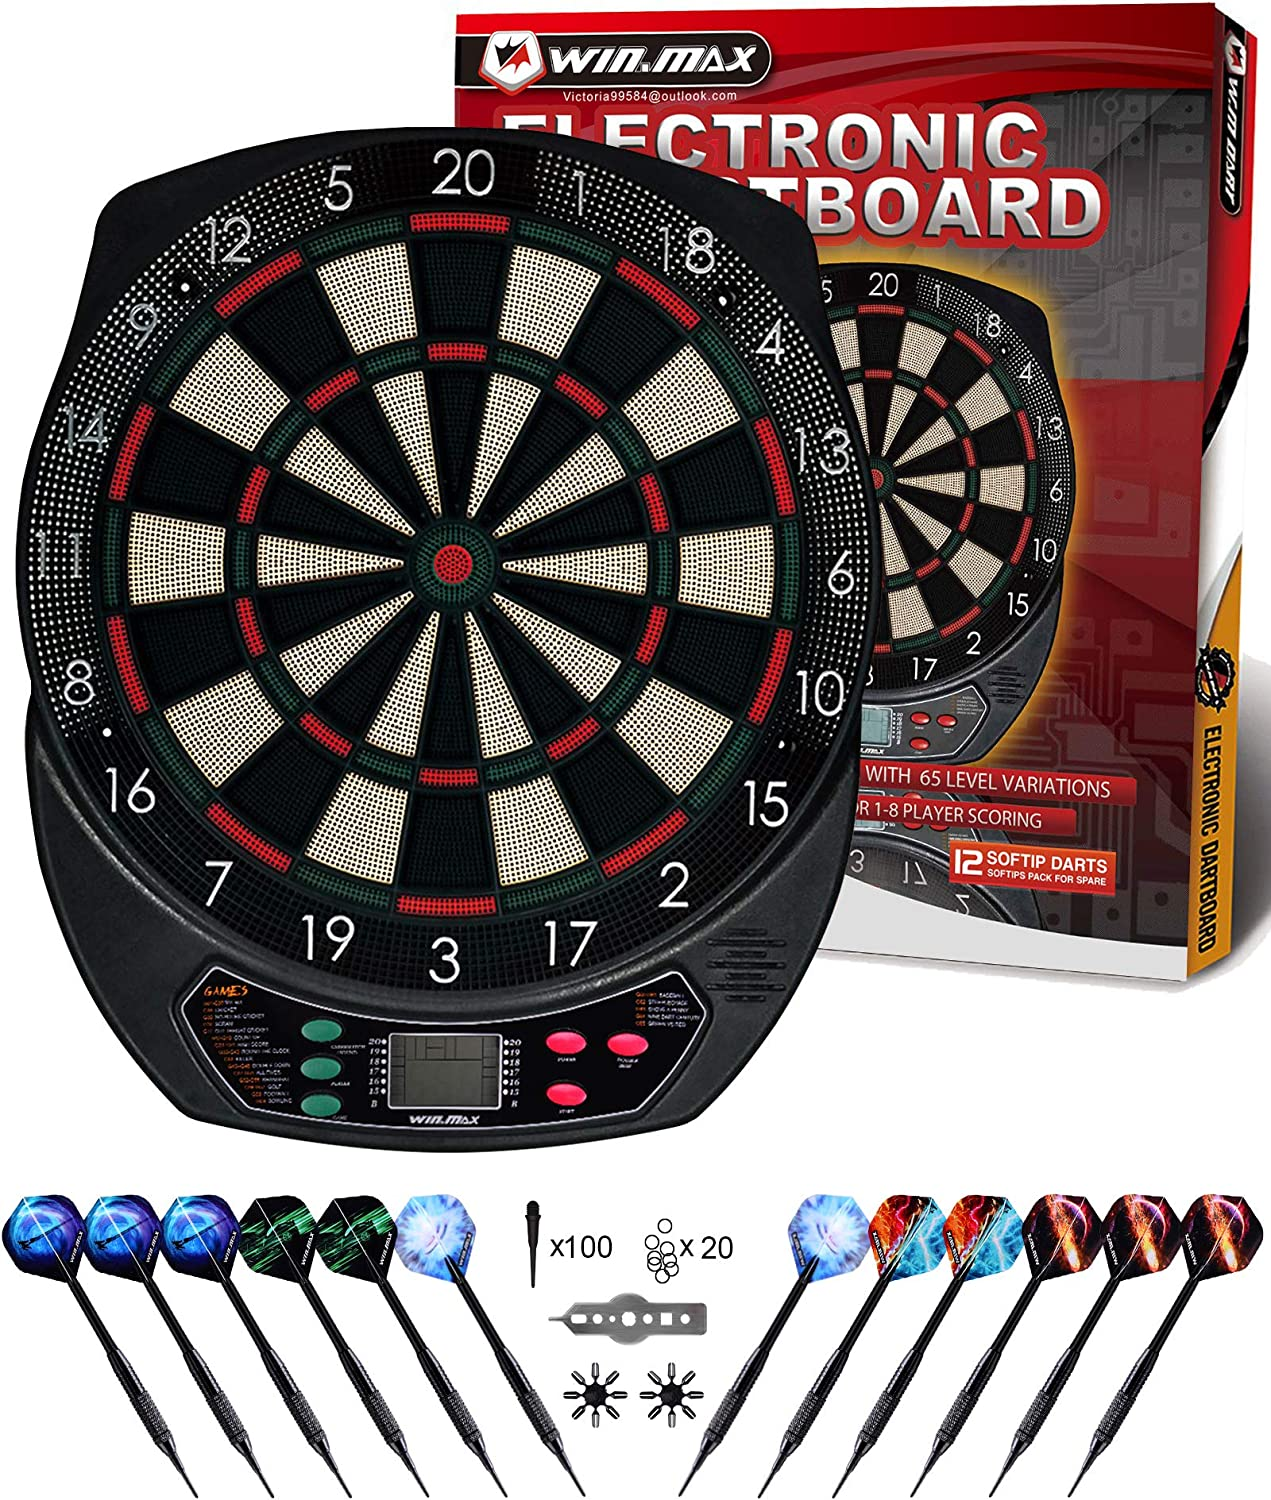 WIN.MAX Electronic Dart Board Soft Tip Dart Board Set